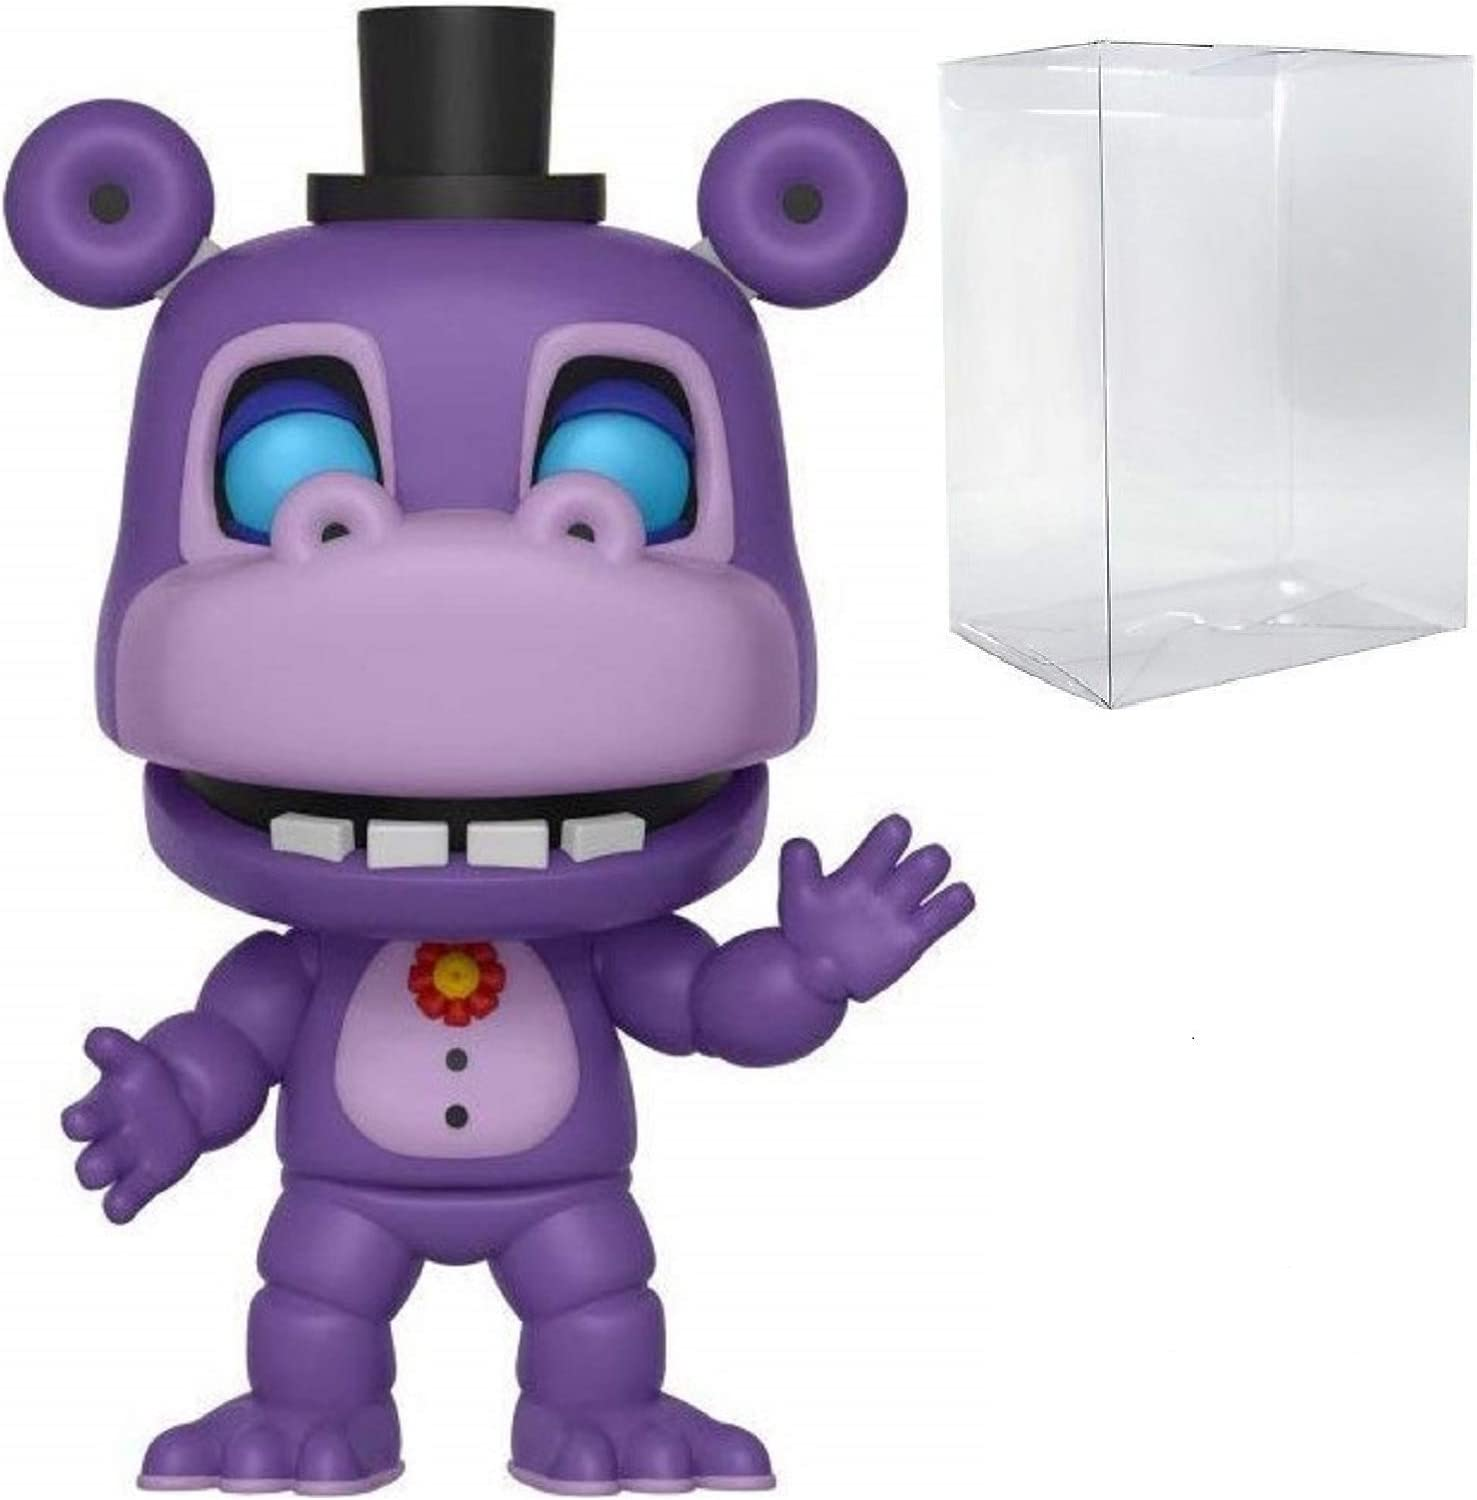 Amazon Com Funko Pop Games Five Nights At Freddy S Pizza Simulator Mr Hippo Vinyl Figure Bundled With Pop Box Protector Case Toys Games A bus stop horror story animated. funko pop games five nights at freddy s pizza simulator mr hippo vinyl figure bundled with pop box protector case